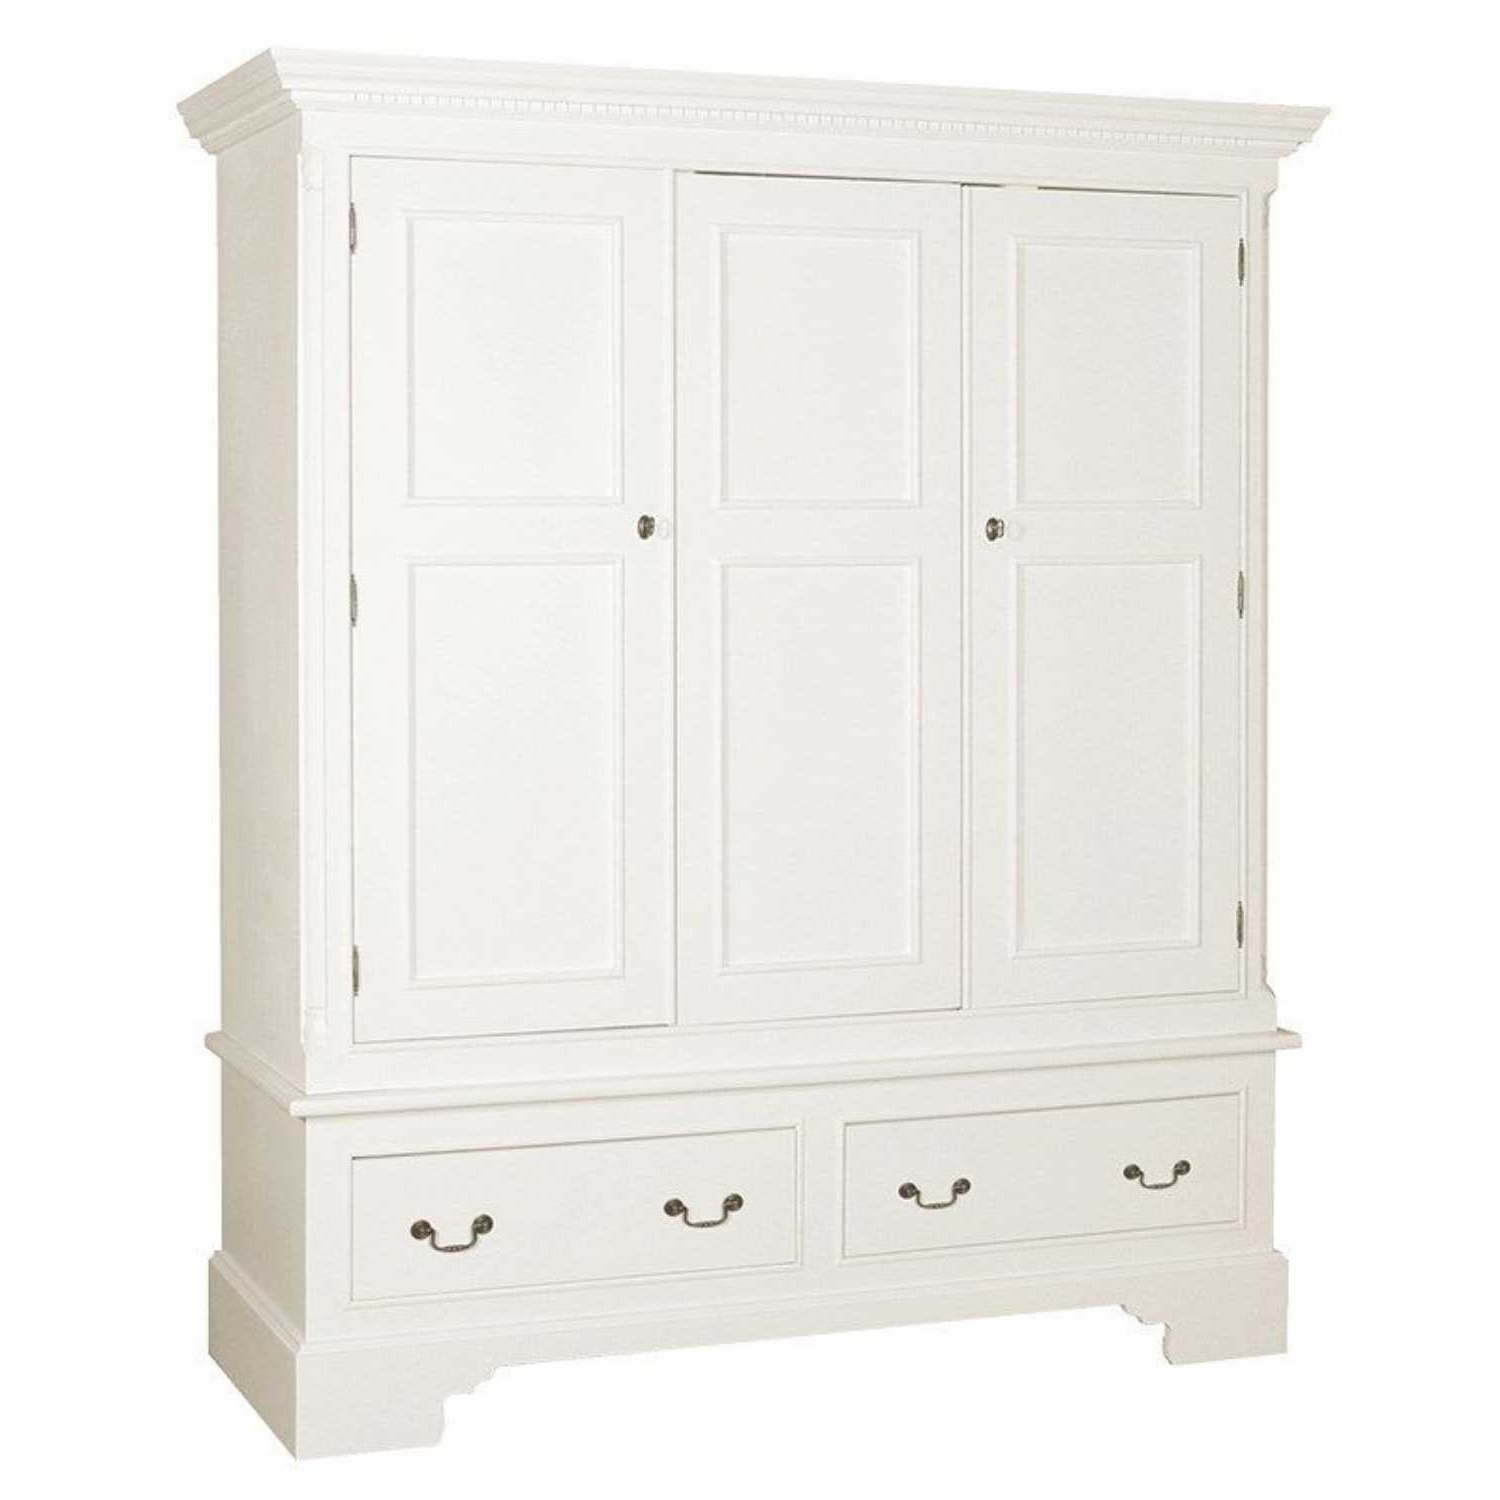 Georgian Shabby Chic White Painted Triple 3 Door 2 Drawer Wardrobe In Recent 3 Door White Wardrobes (View 7 of 15)